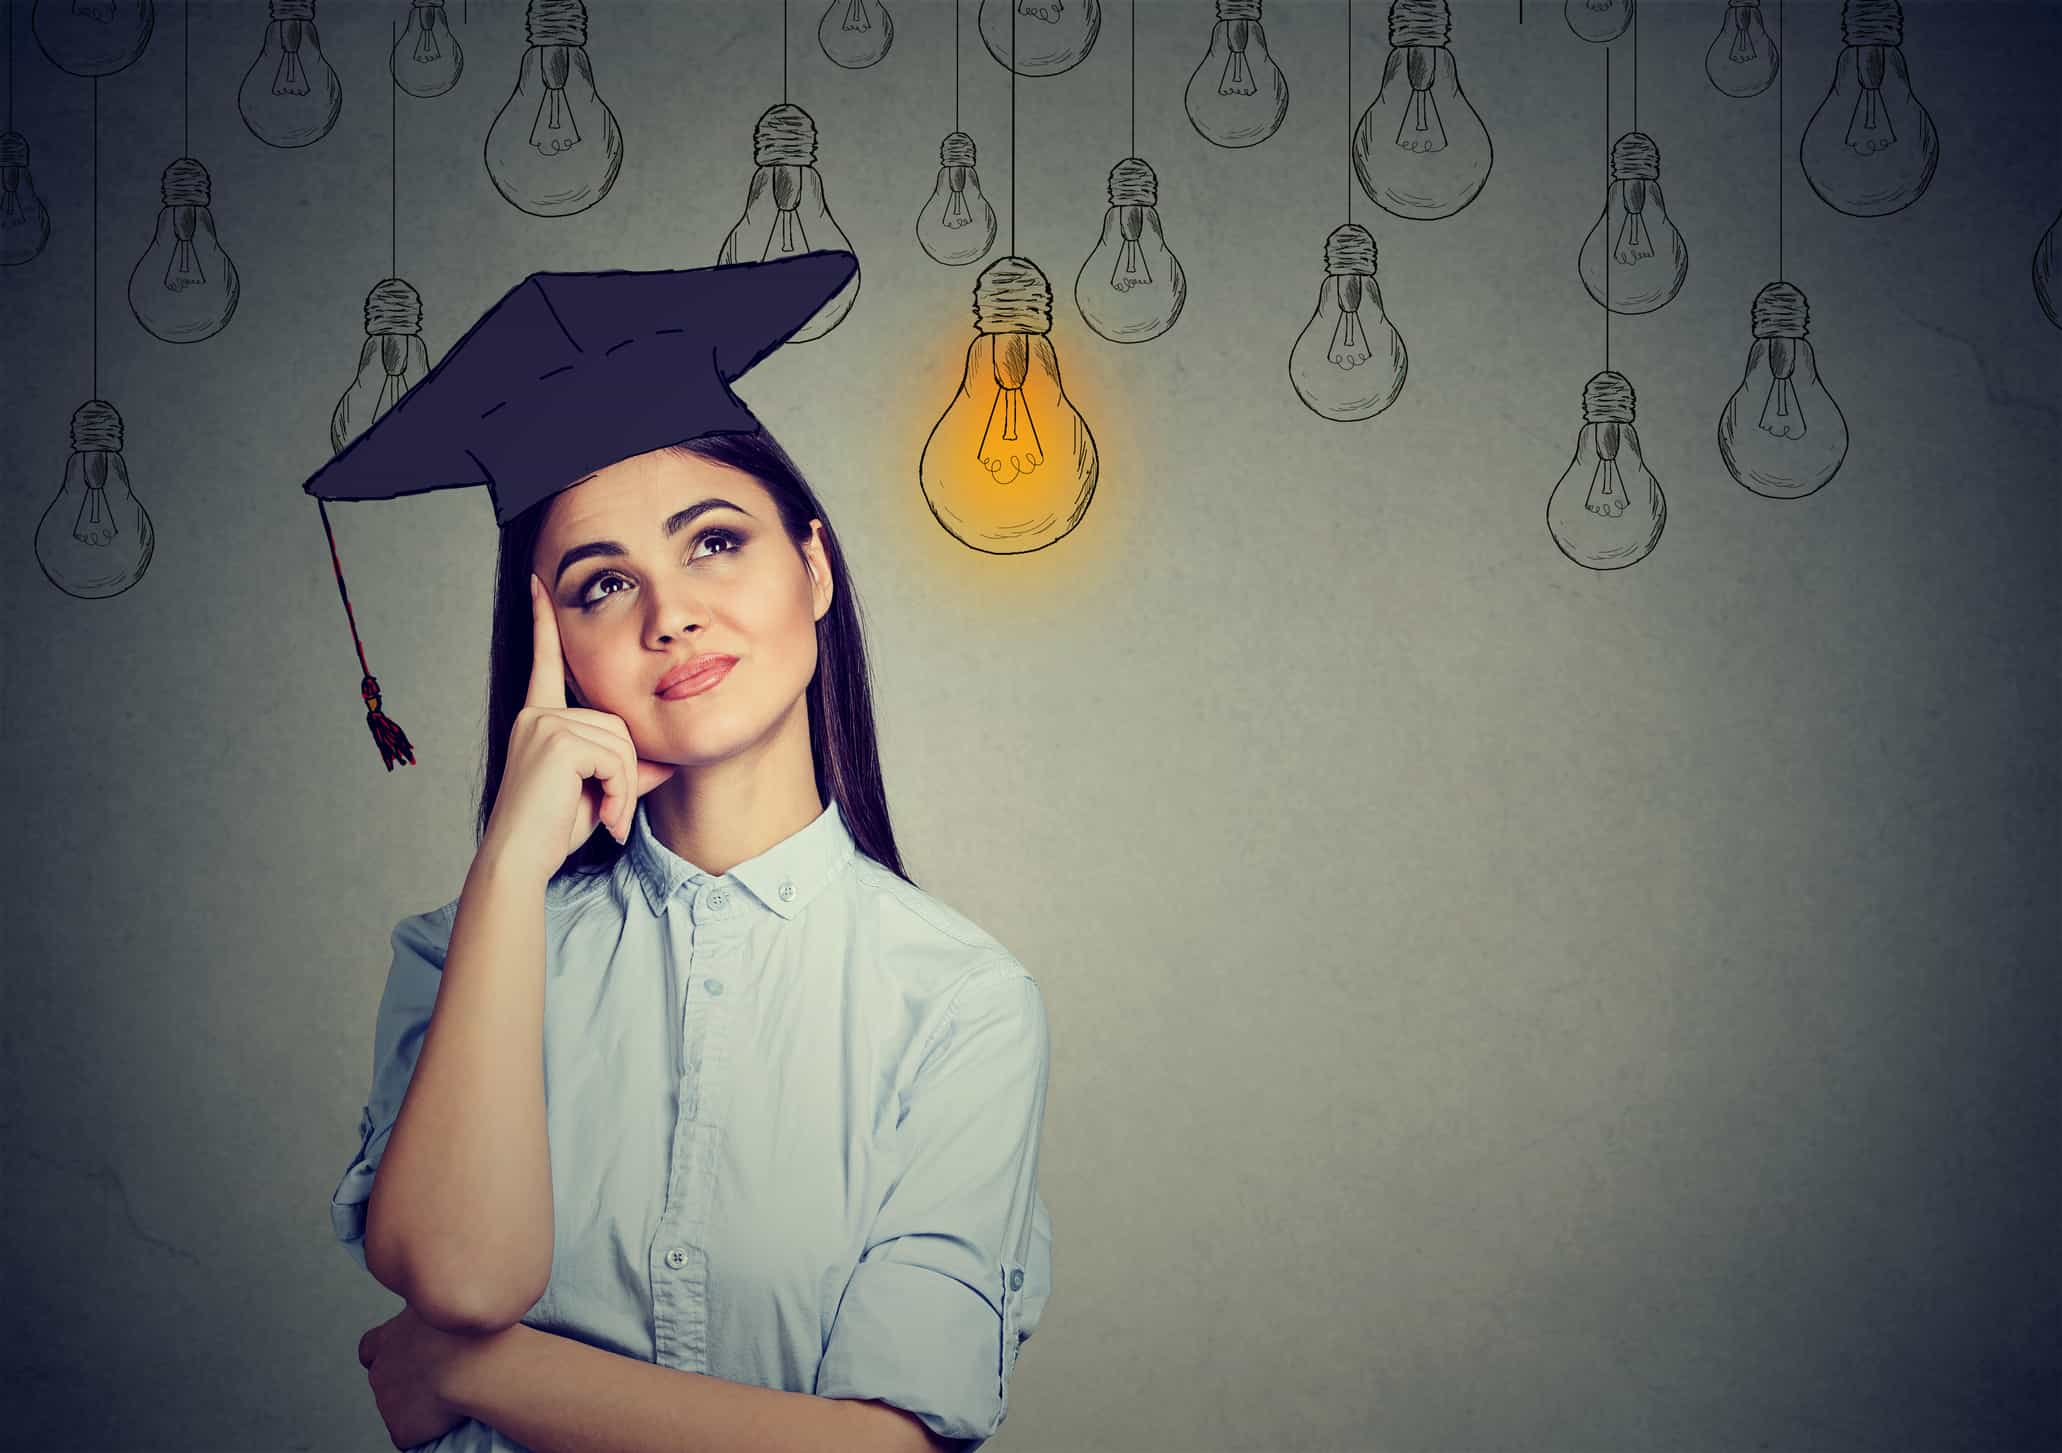 The 10 Best College Degrees to Get a Job - Debt com